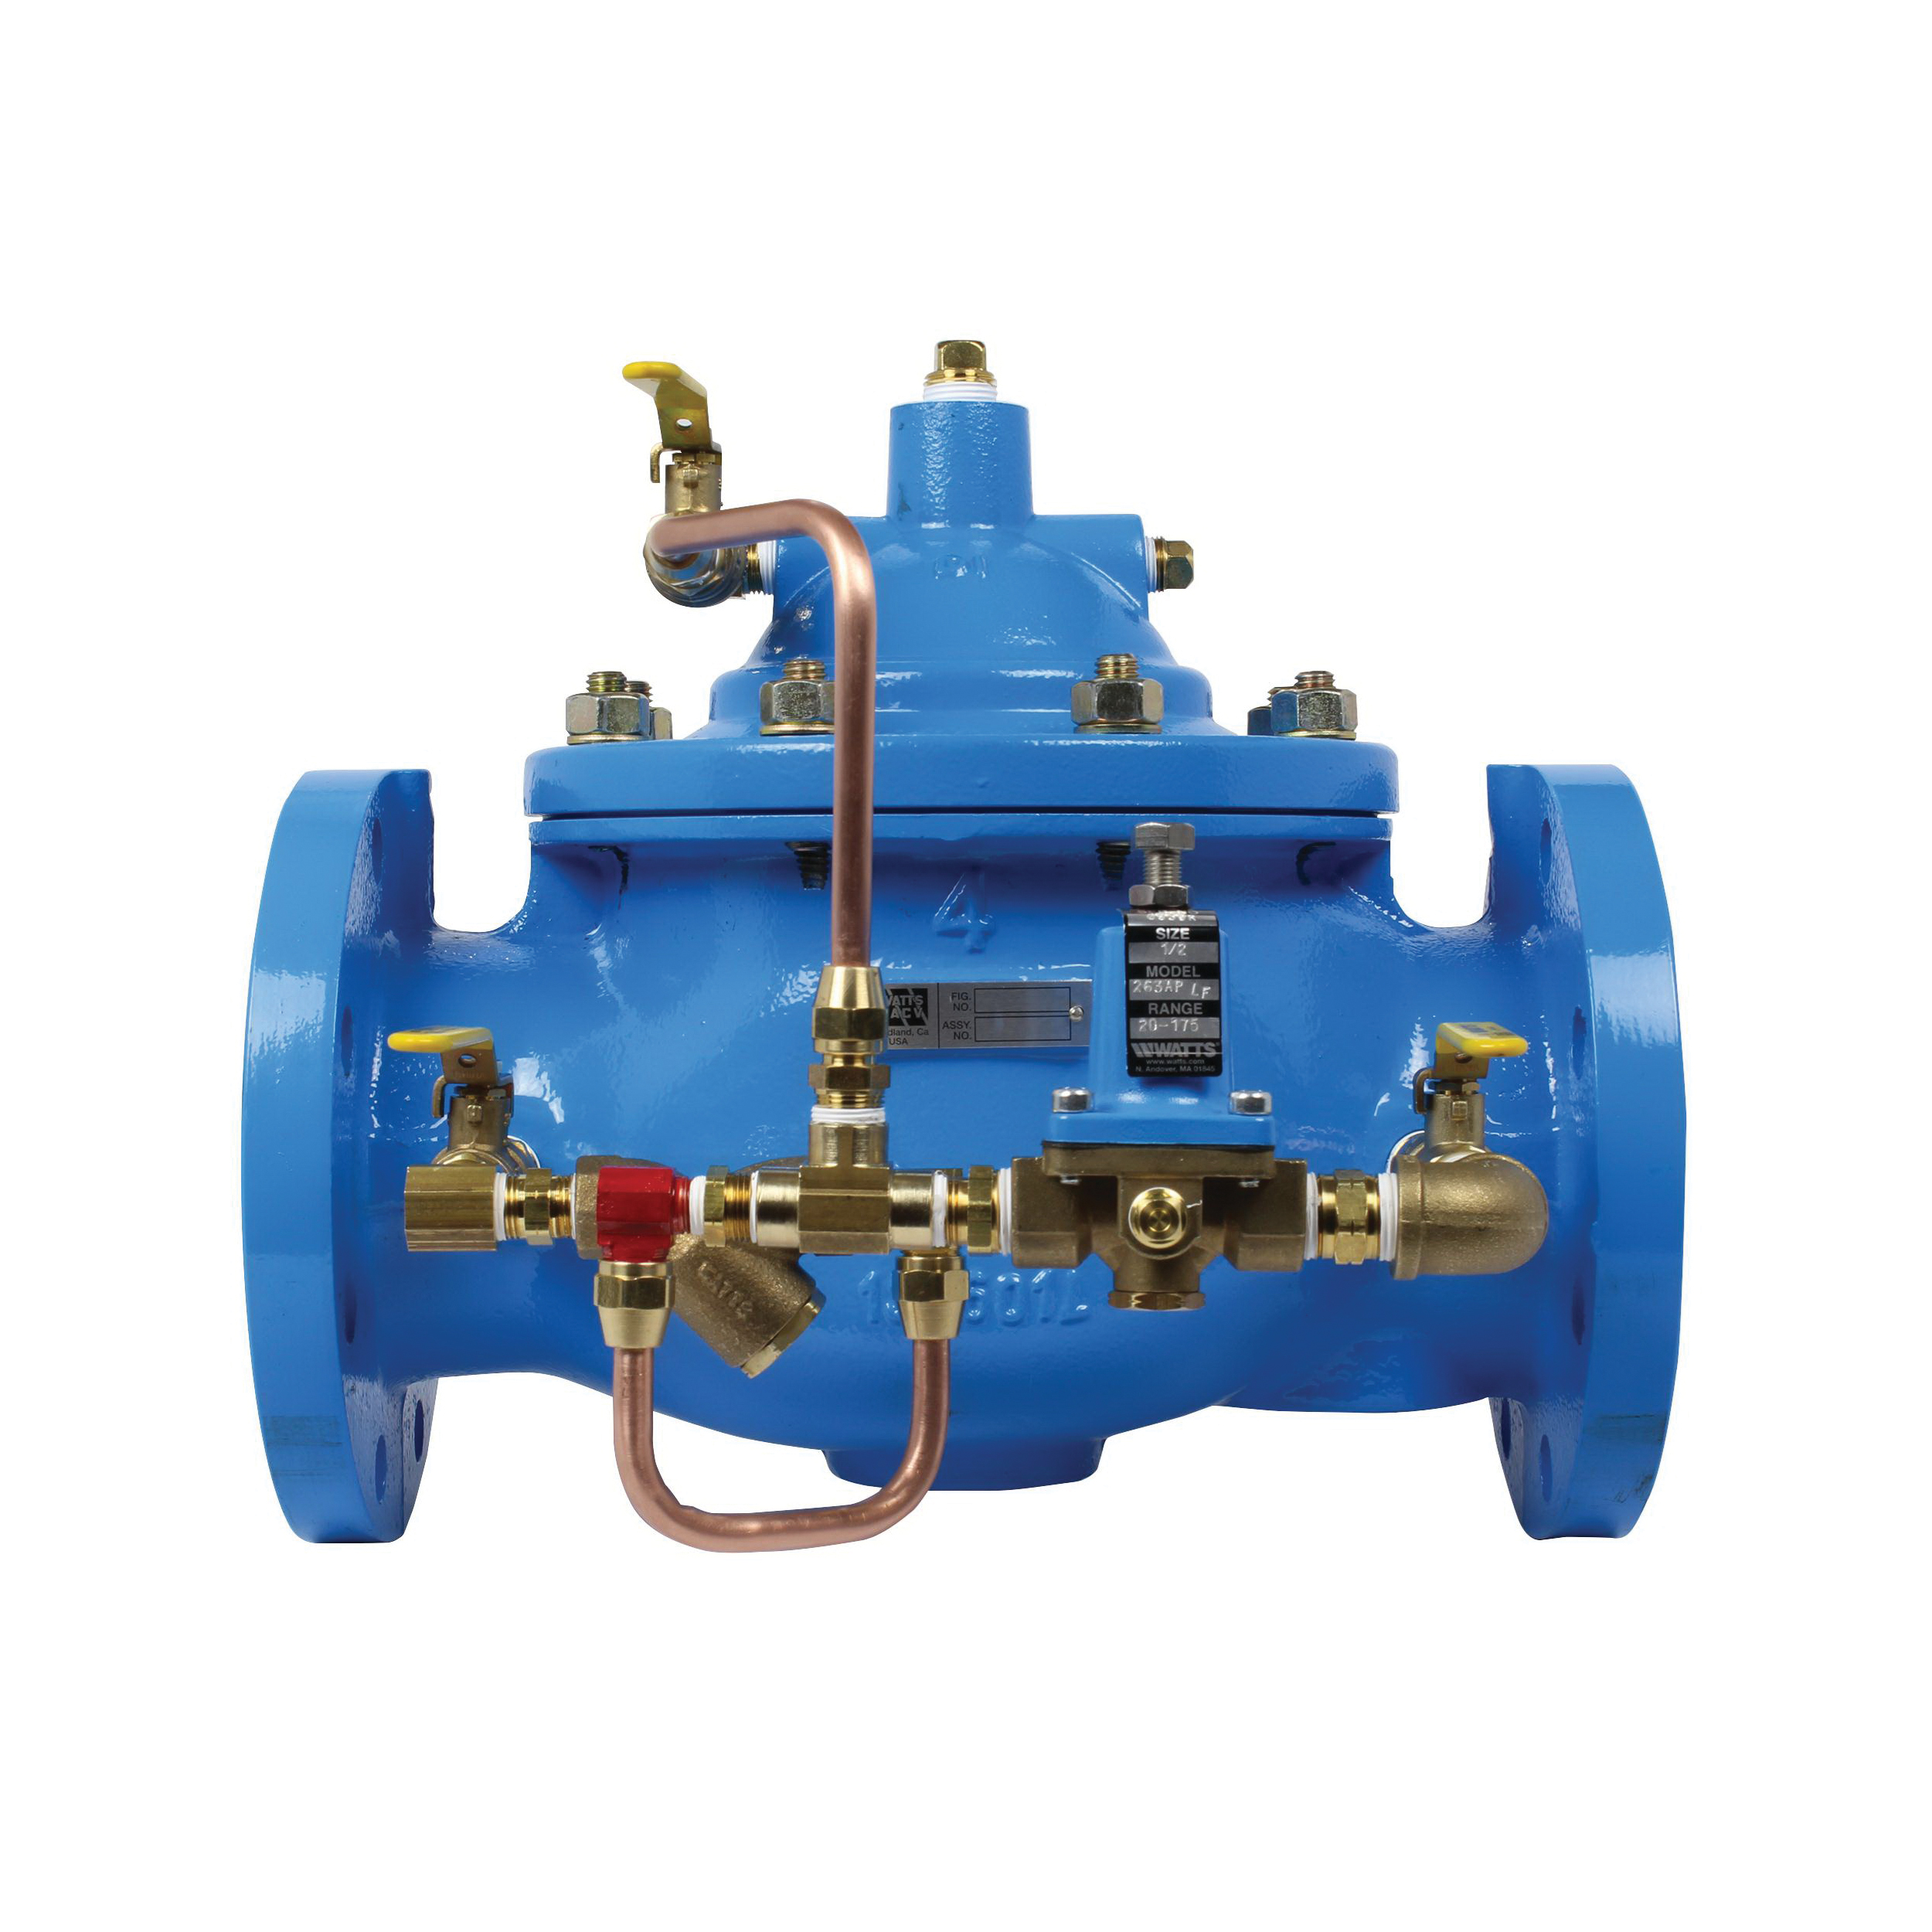 WATTS® V2018-04 LFF115 Pressure Reducing Globe Valve, 6 in, Flange, 250 psi, 115 to 1850 gpm, Ductile Iron Body